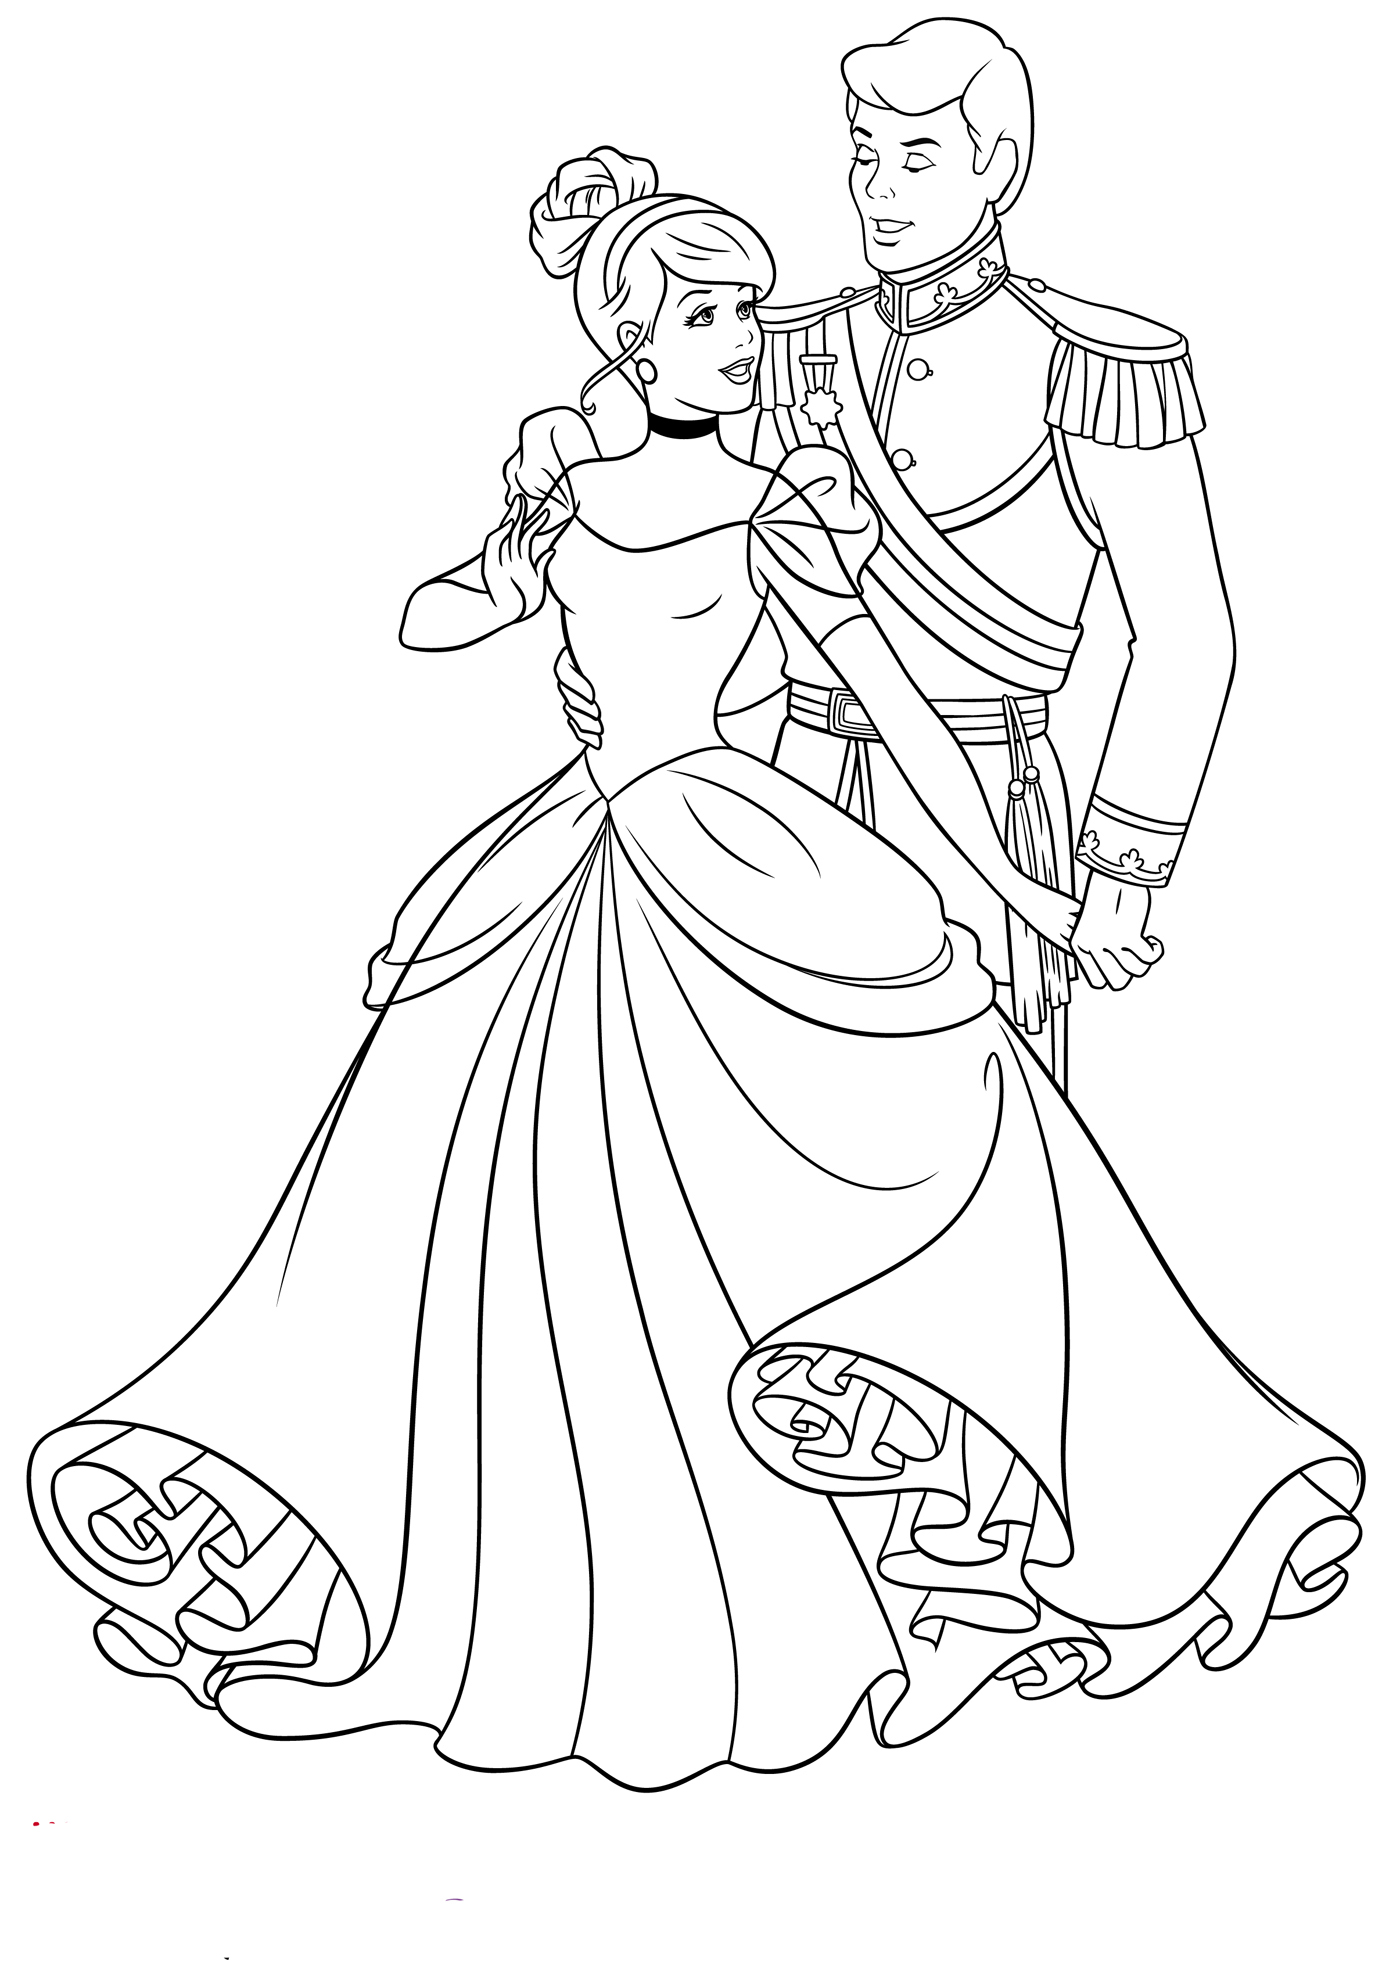 Cinderella coloring pages to download